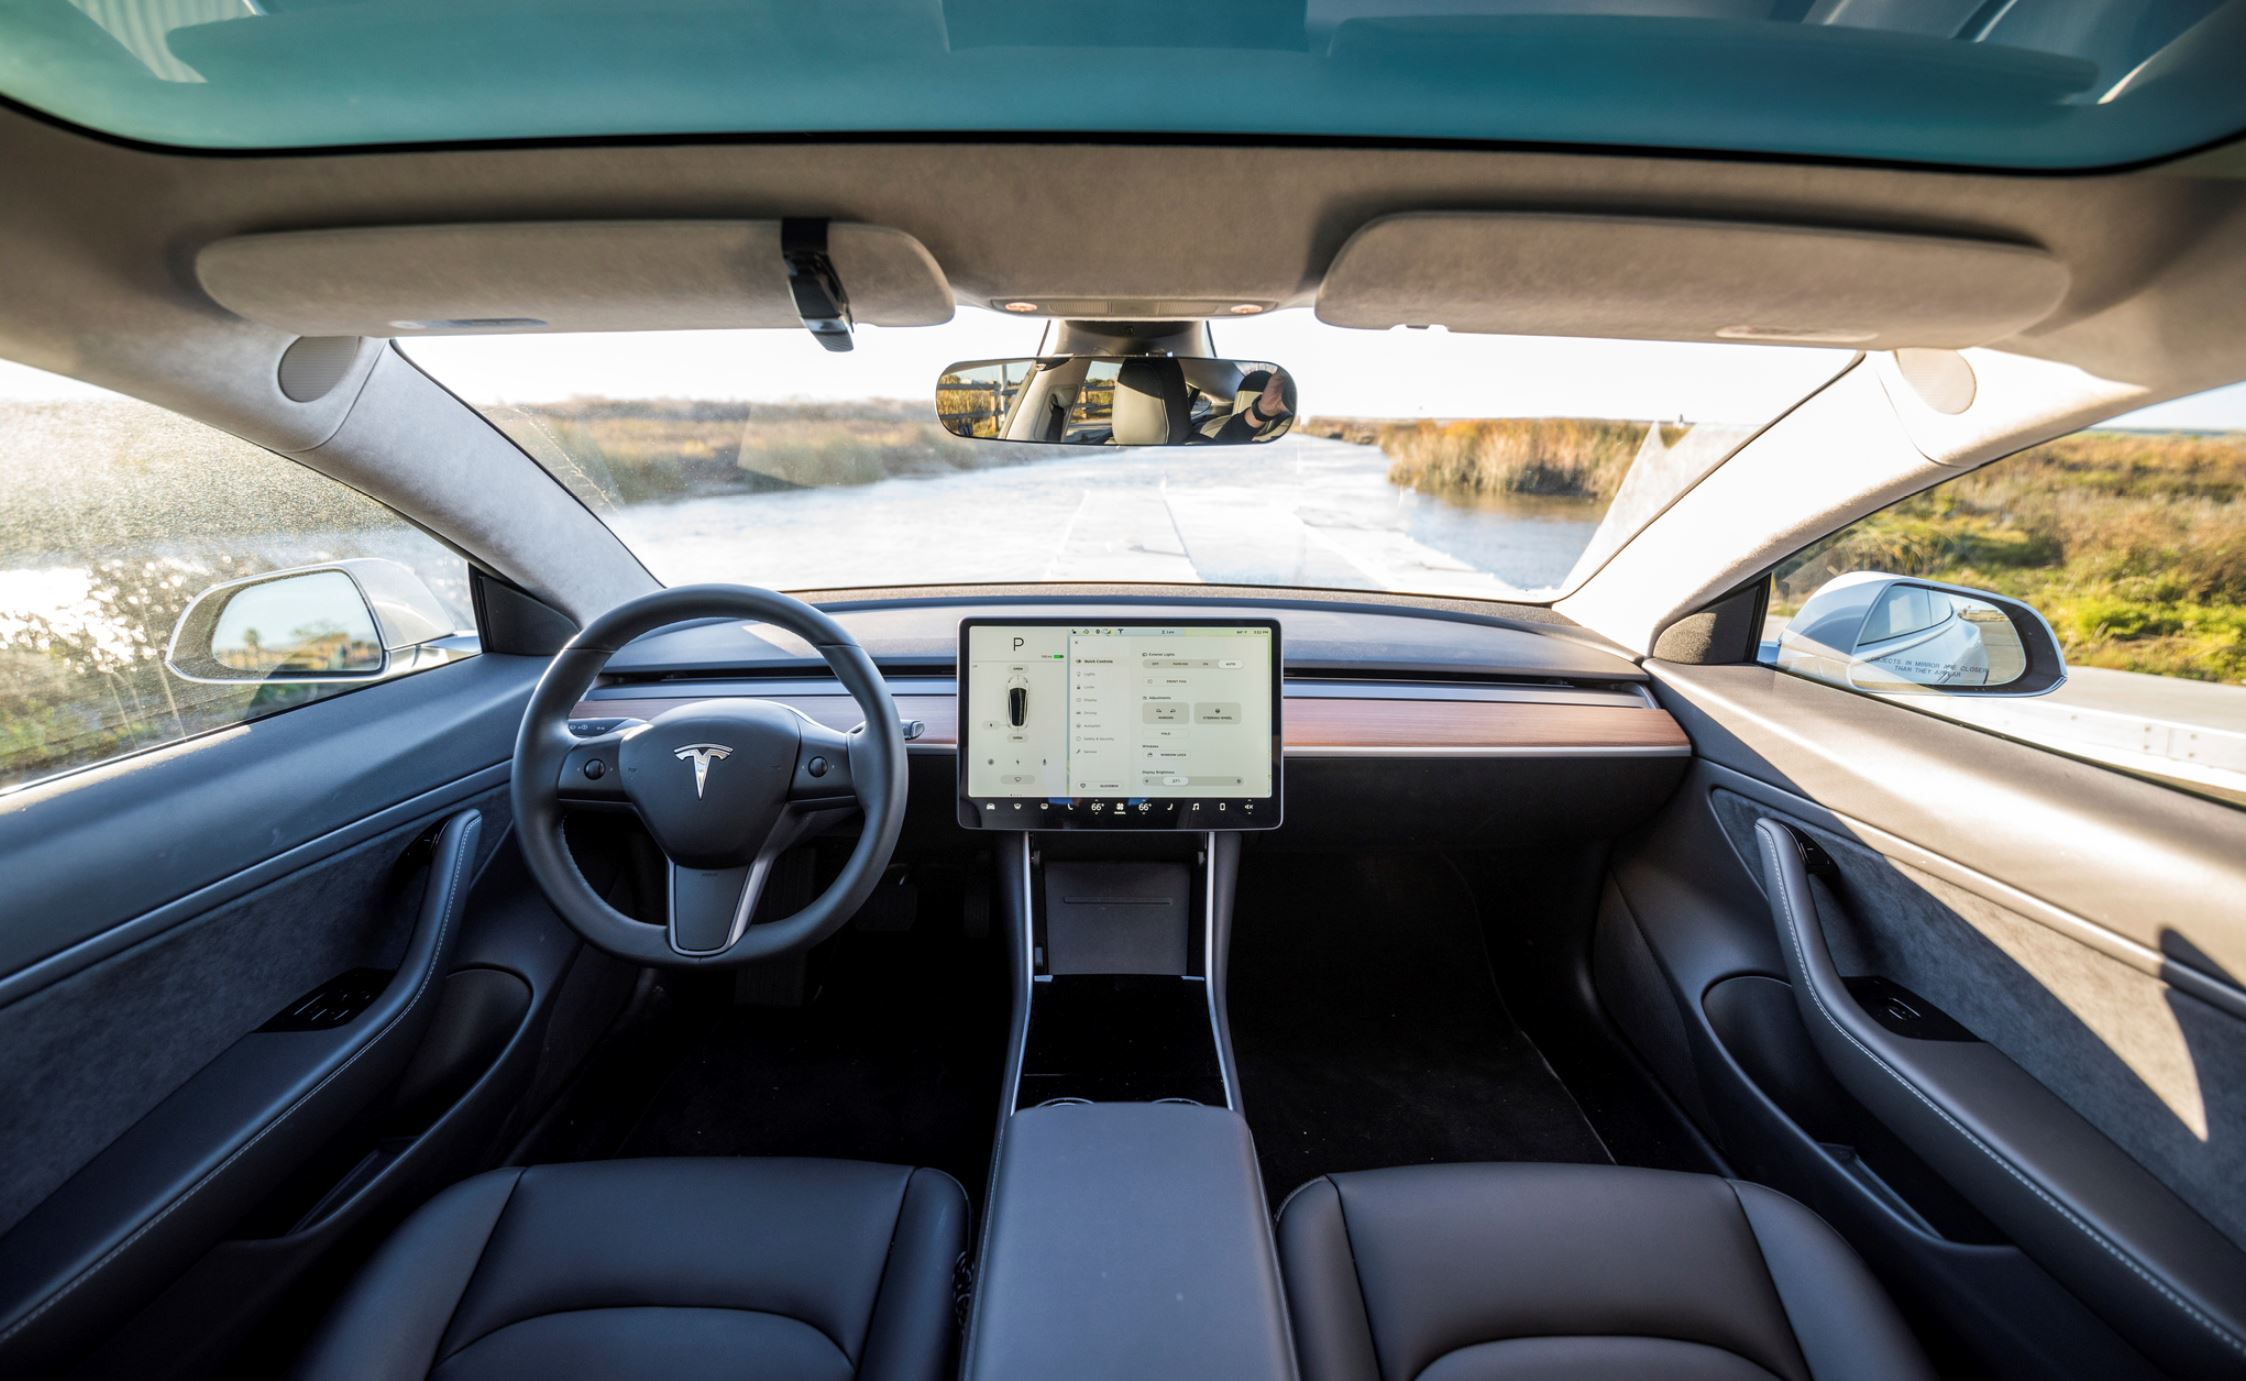 The Tesla model 3, a popular EV with incredible autonomous driving features - Image Credit:  Leo Nguyen via Wikimedia Commons